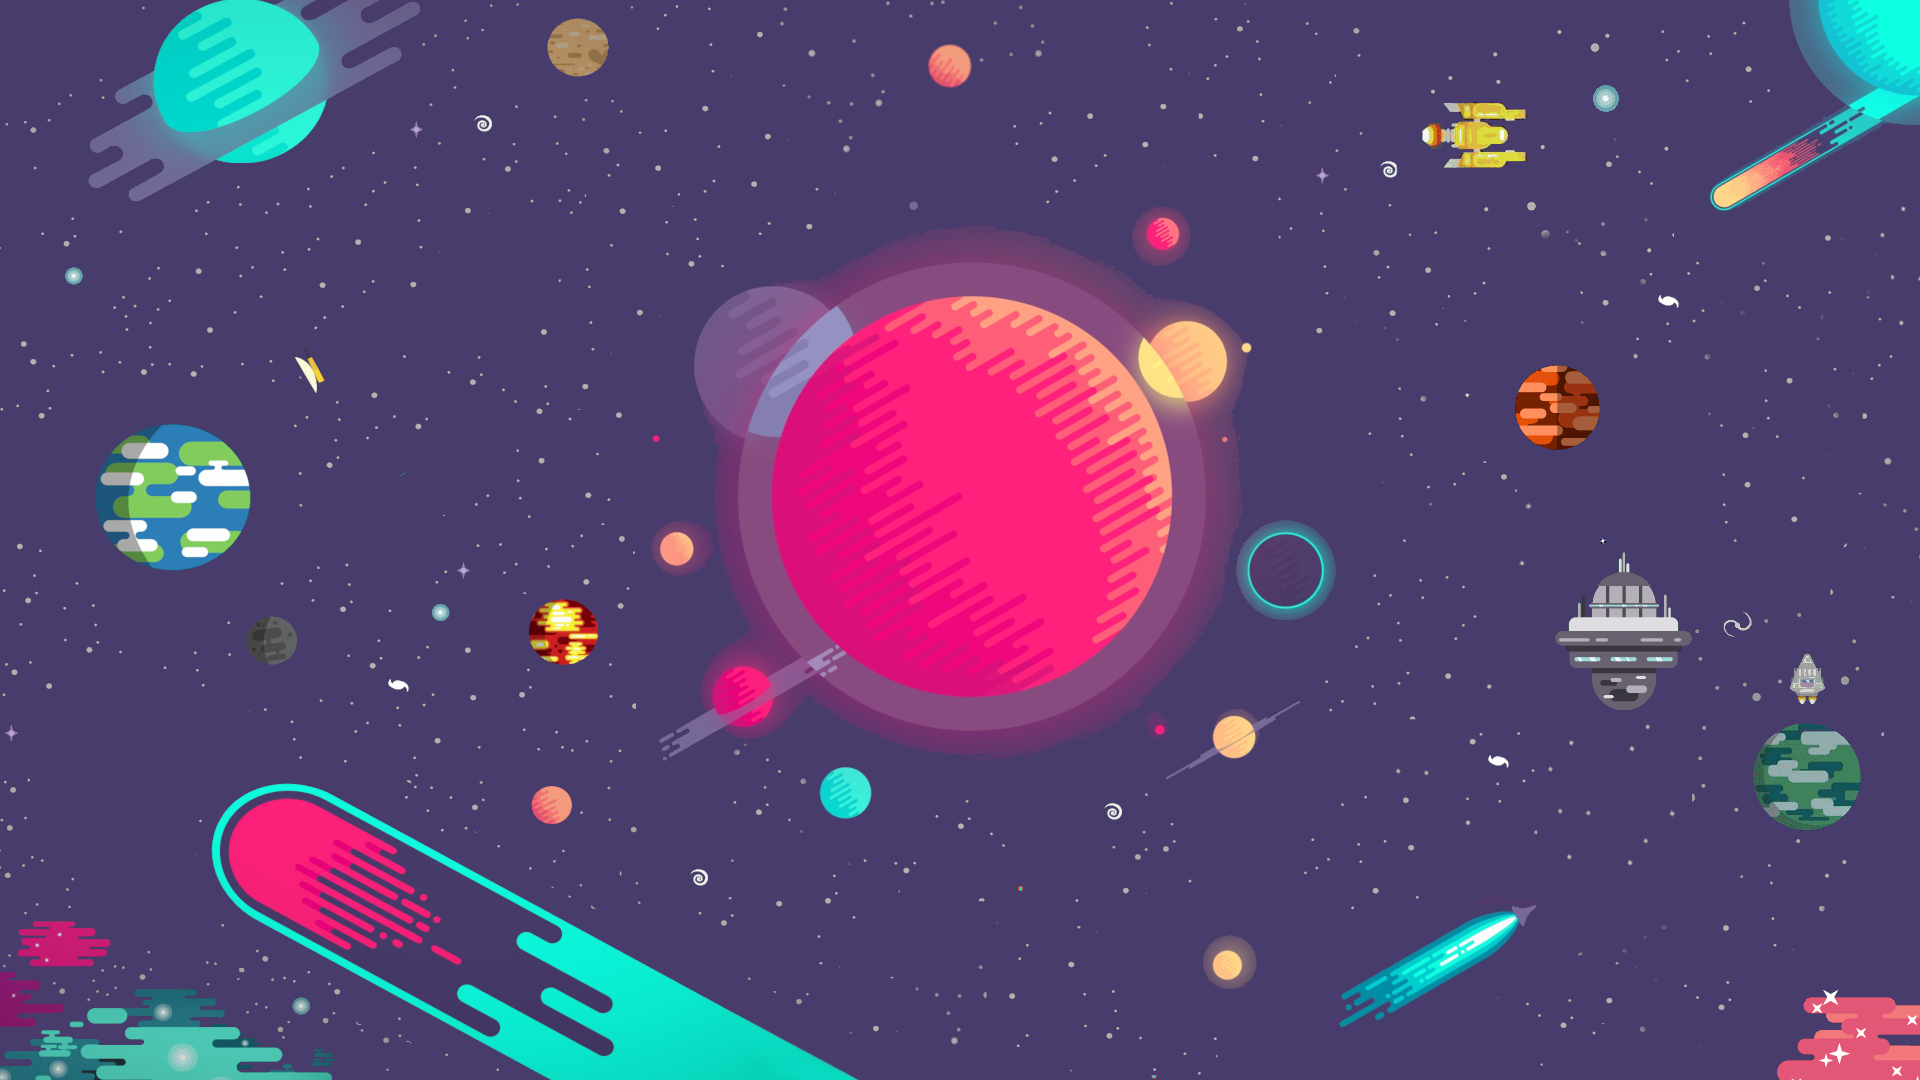 kurzgesagt stylized wallpaper made from a bunch of phone